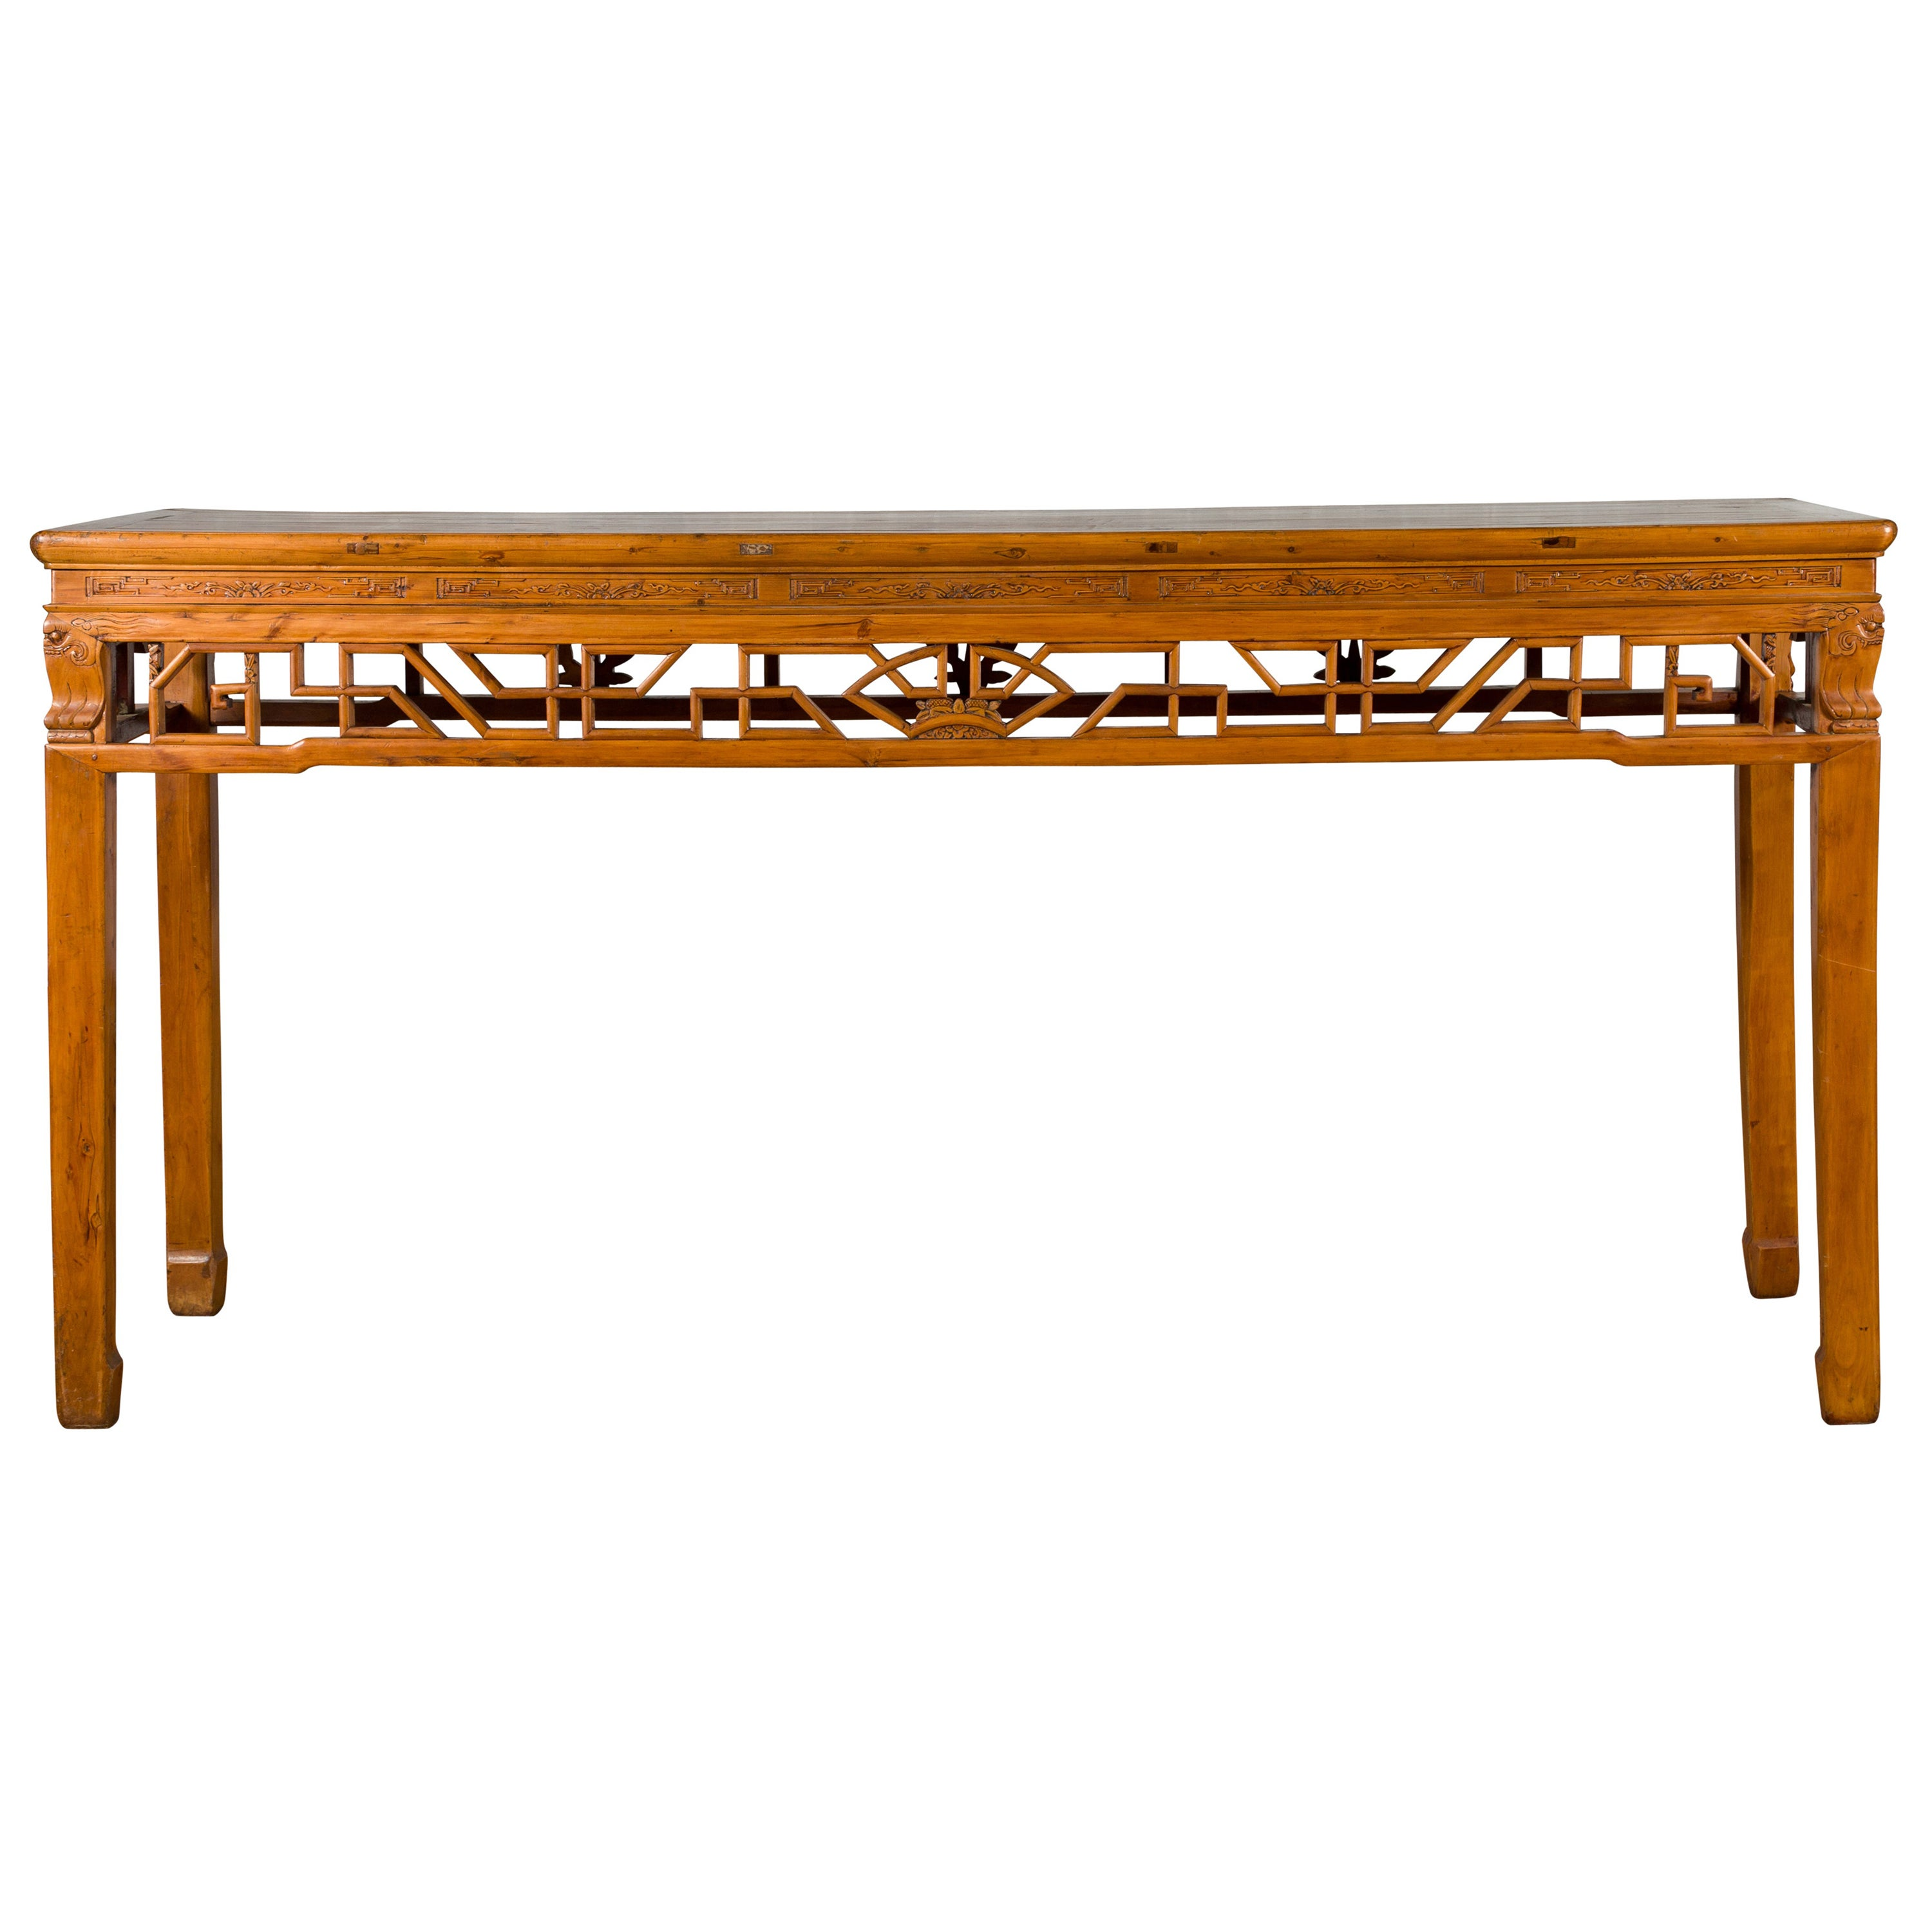 19th Century Chinese Qing Dynasty Period Altar Console Table with Carved Apron